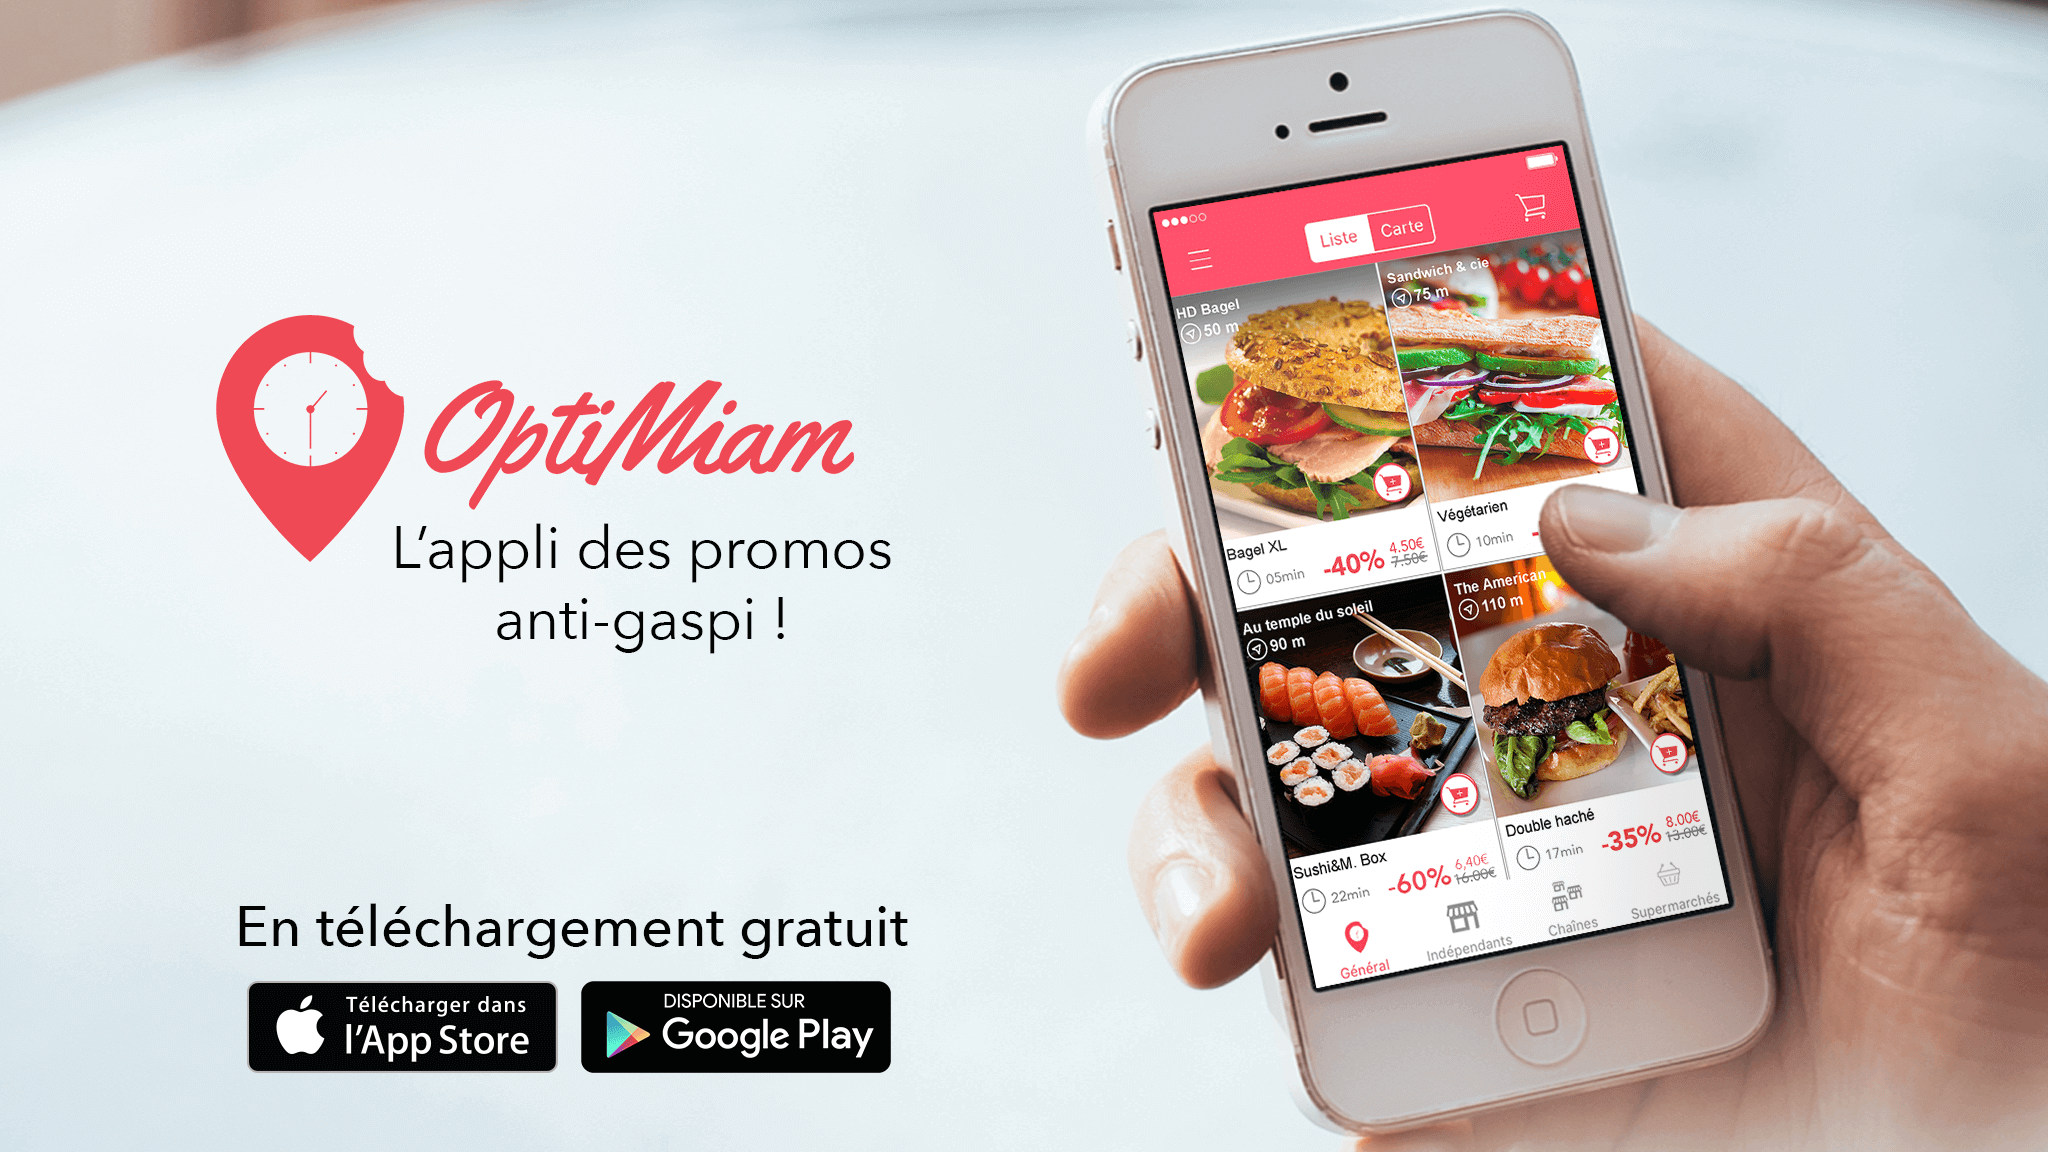 optimiam, application mobile, appli, gaspillage, anti-gaspi, promos, résolutions, start-up, entrepreneuriat